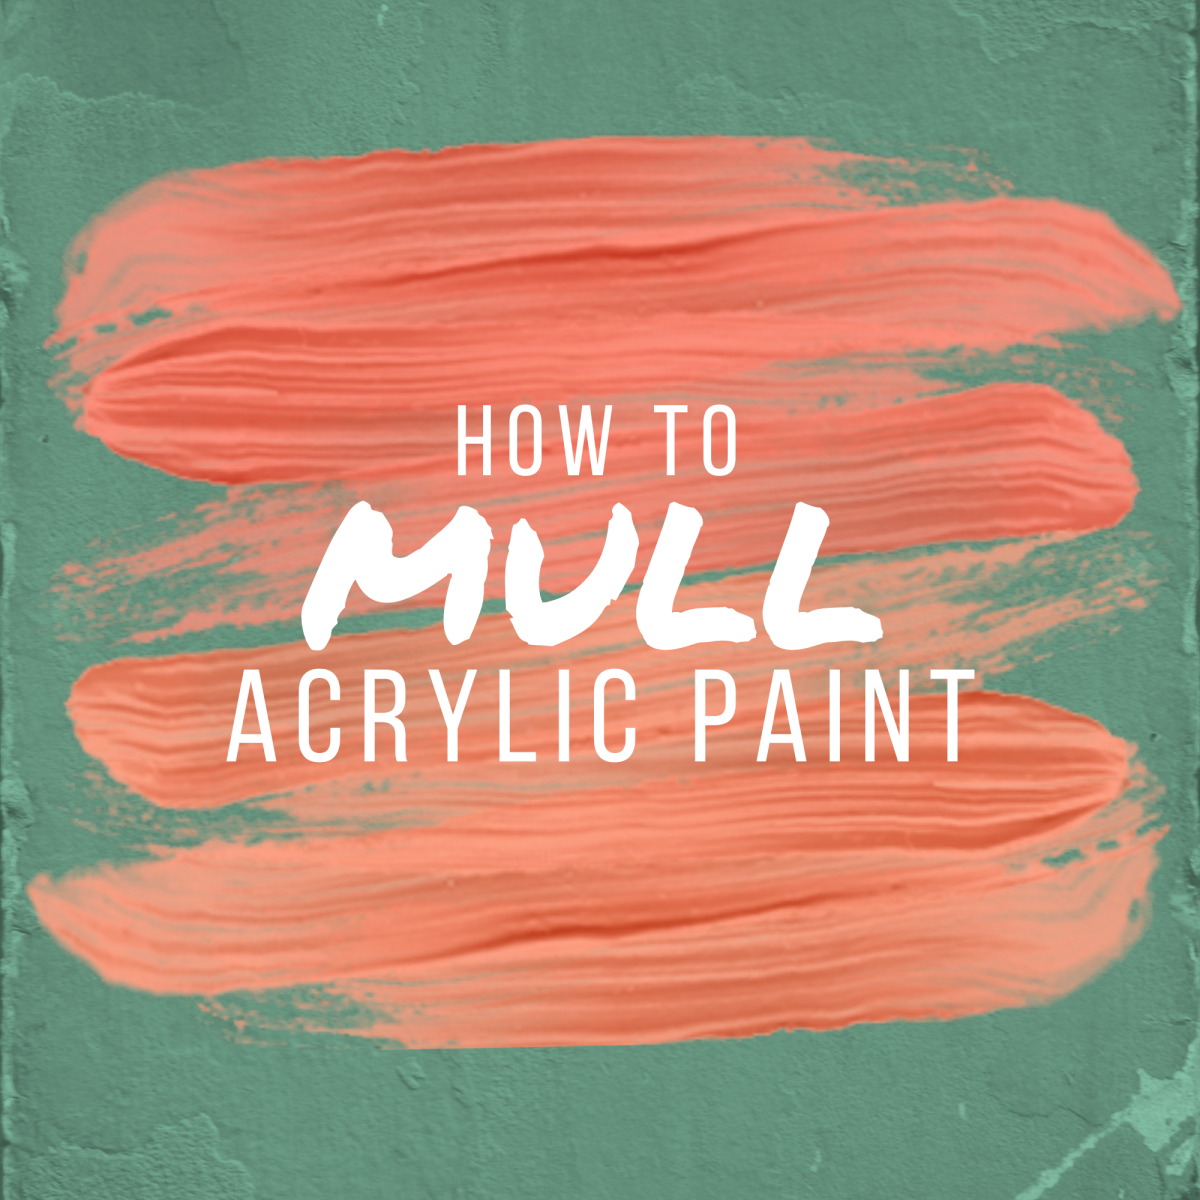 How to mull acrylic paint.